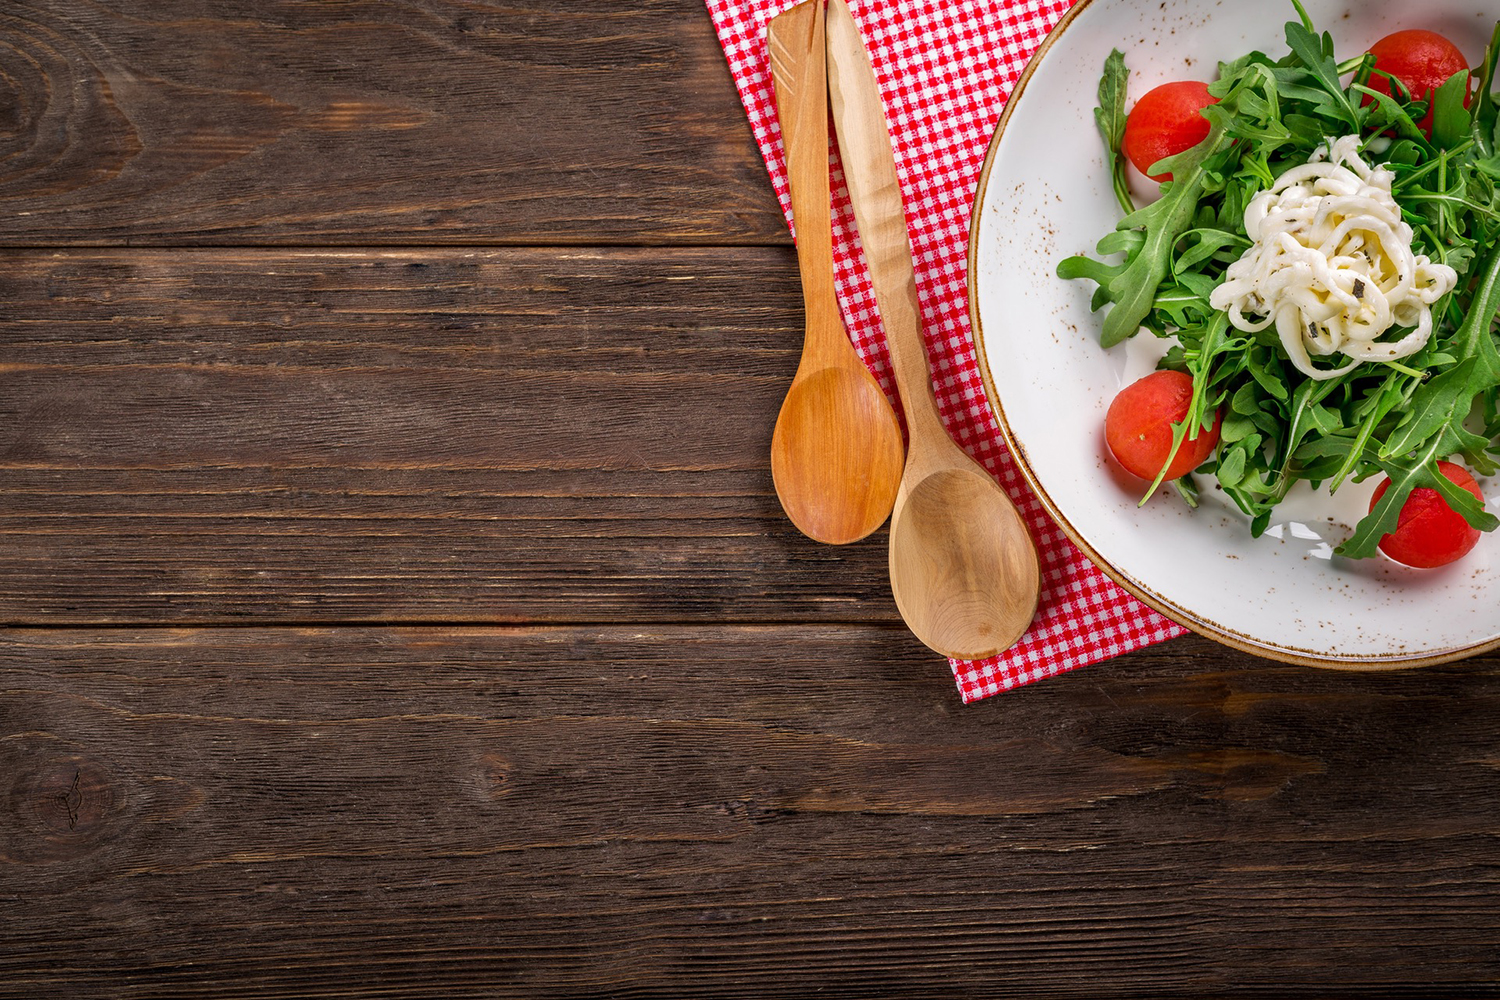 Salad Placed On Wooden Table